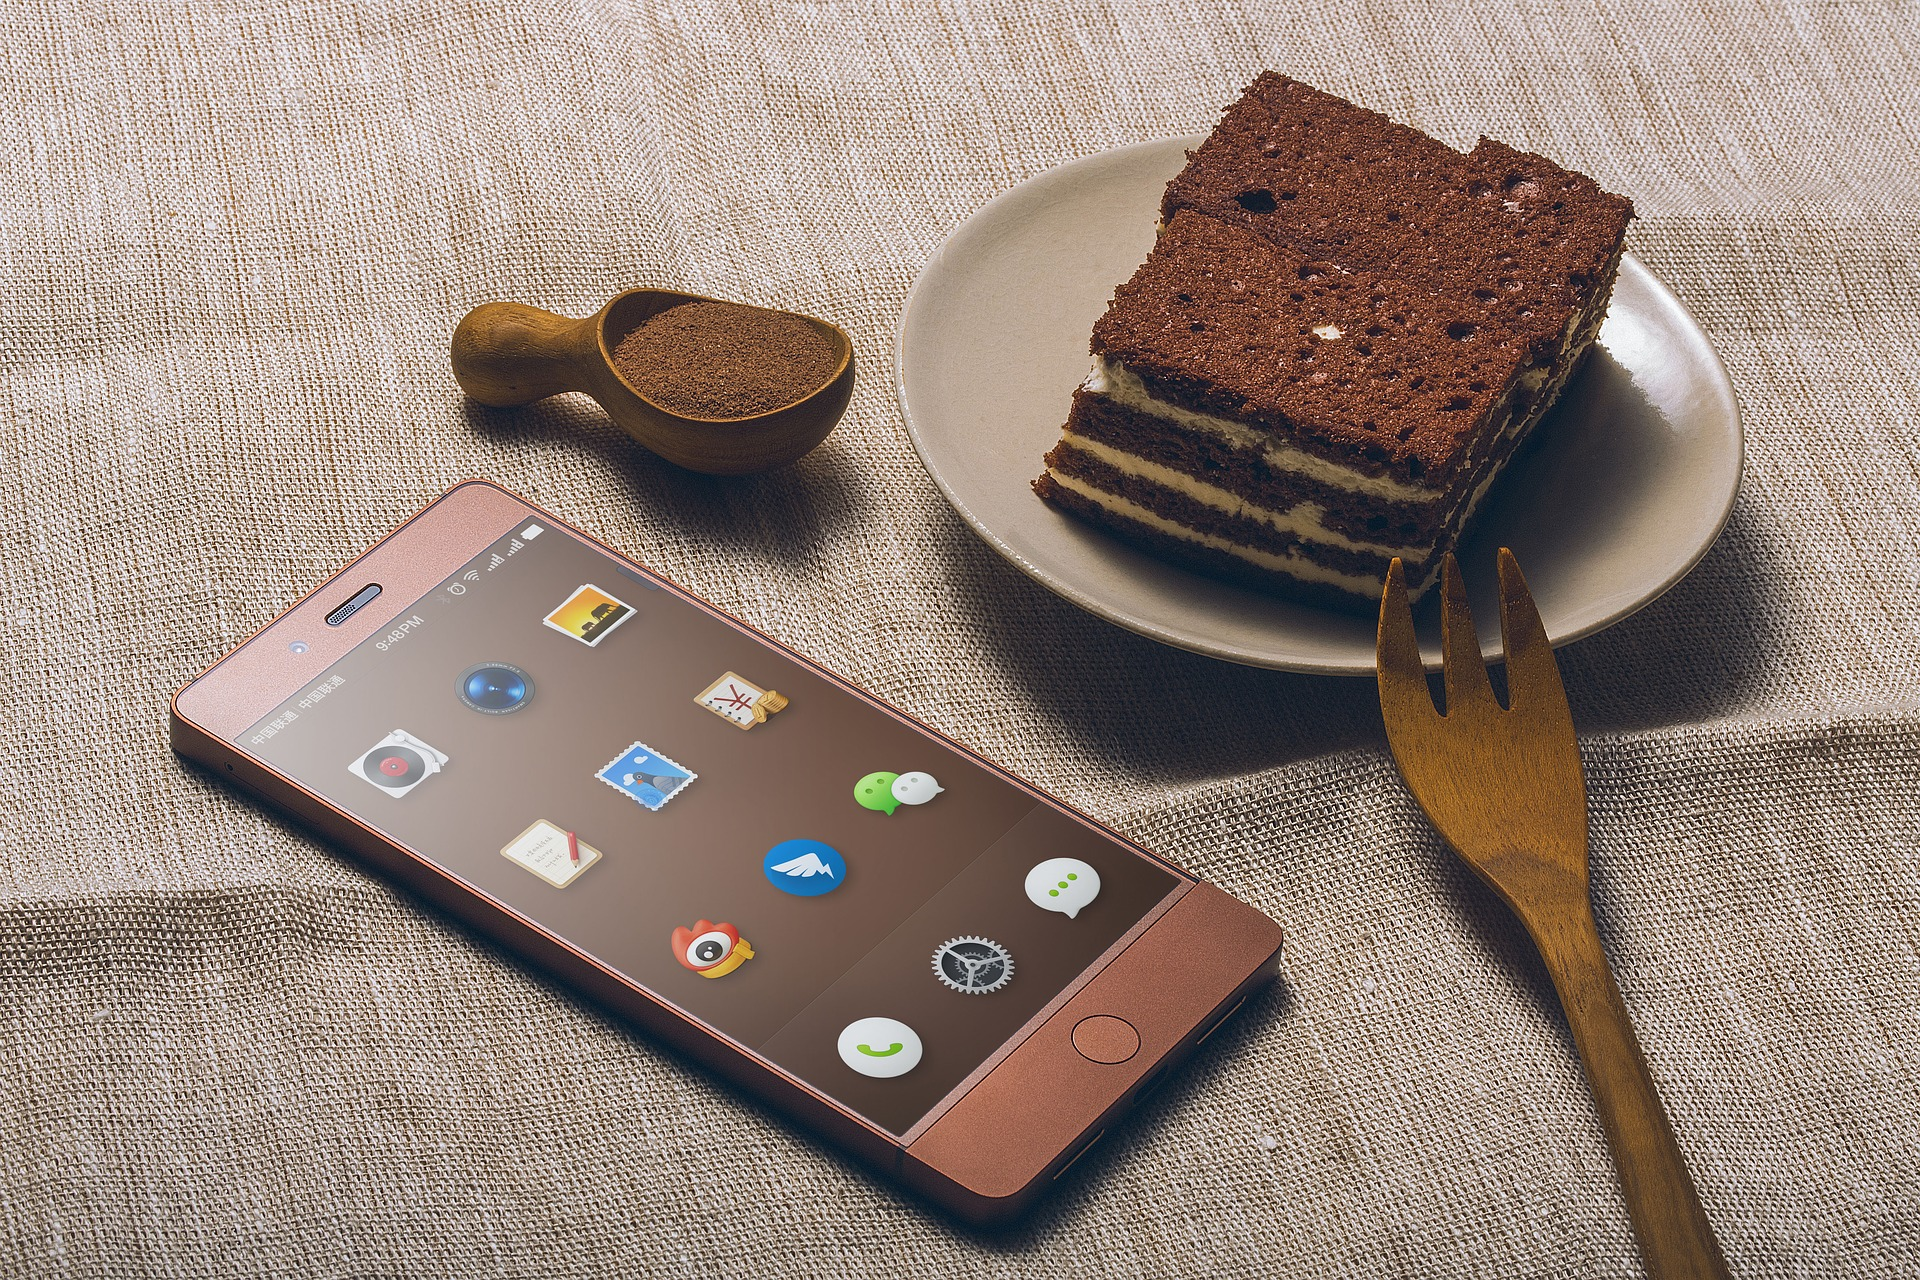 cake - 4 Best Weight Tracking and Weight Loss Apps for iOS and Android